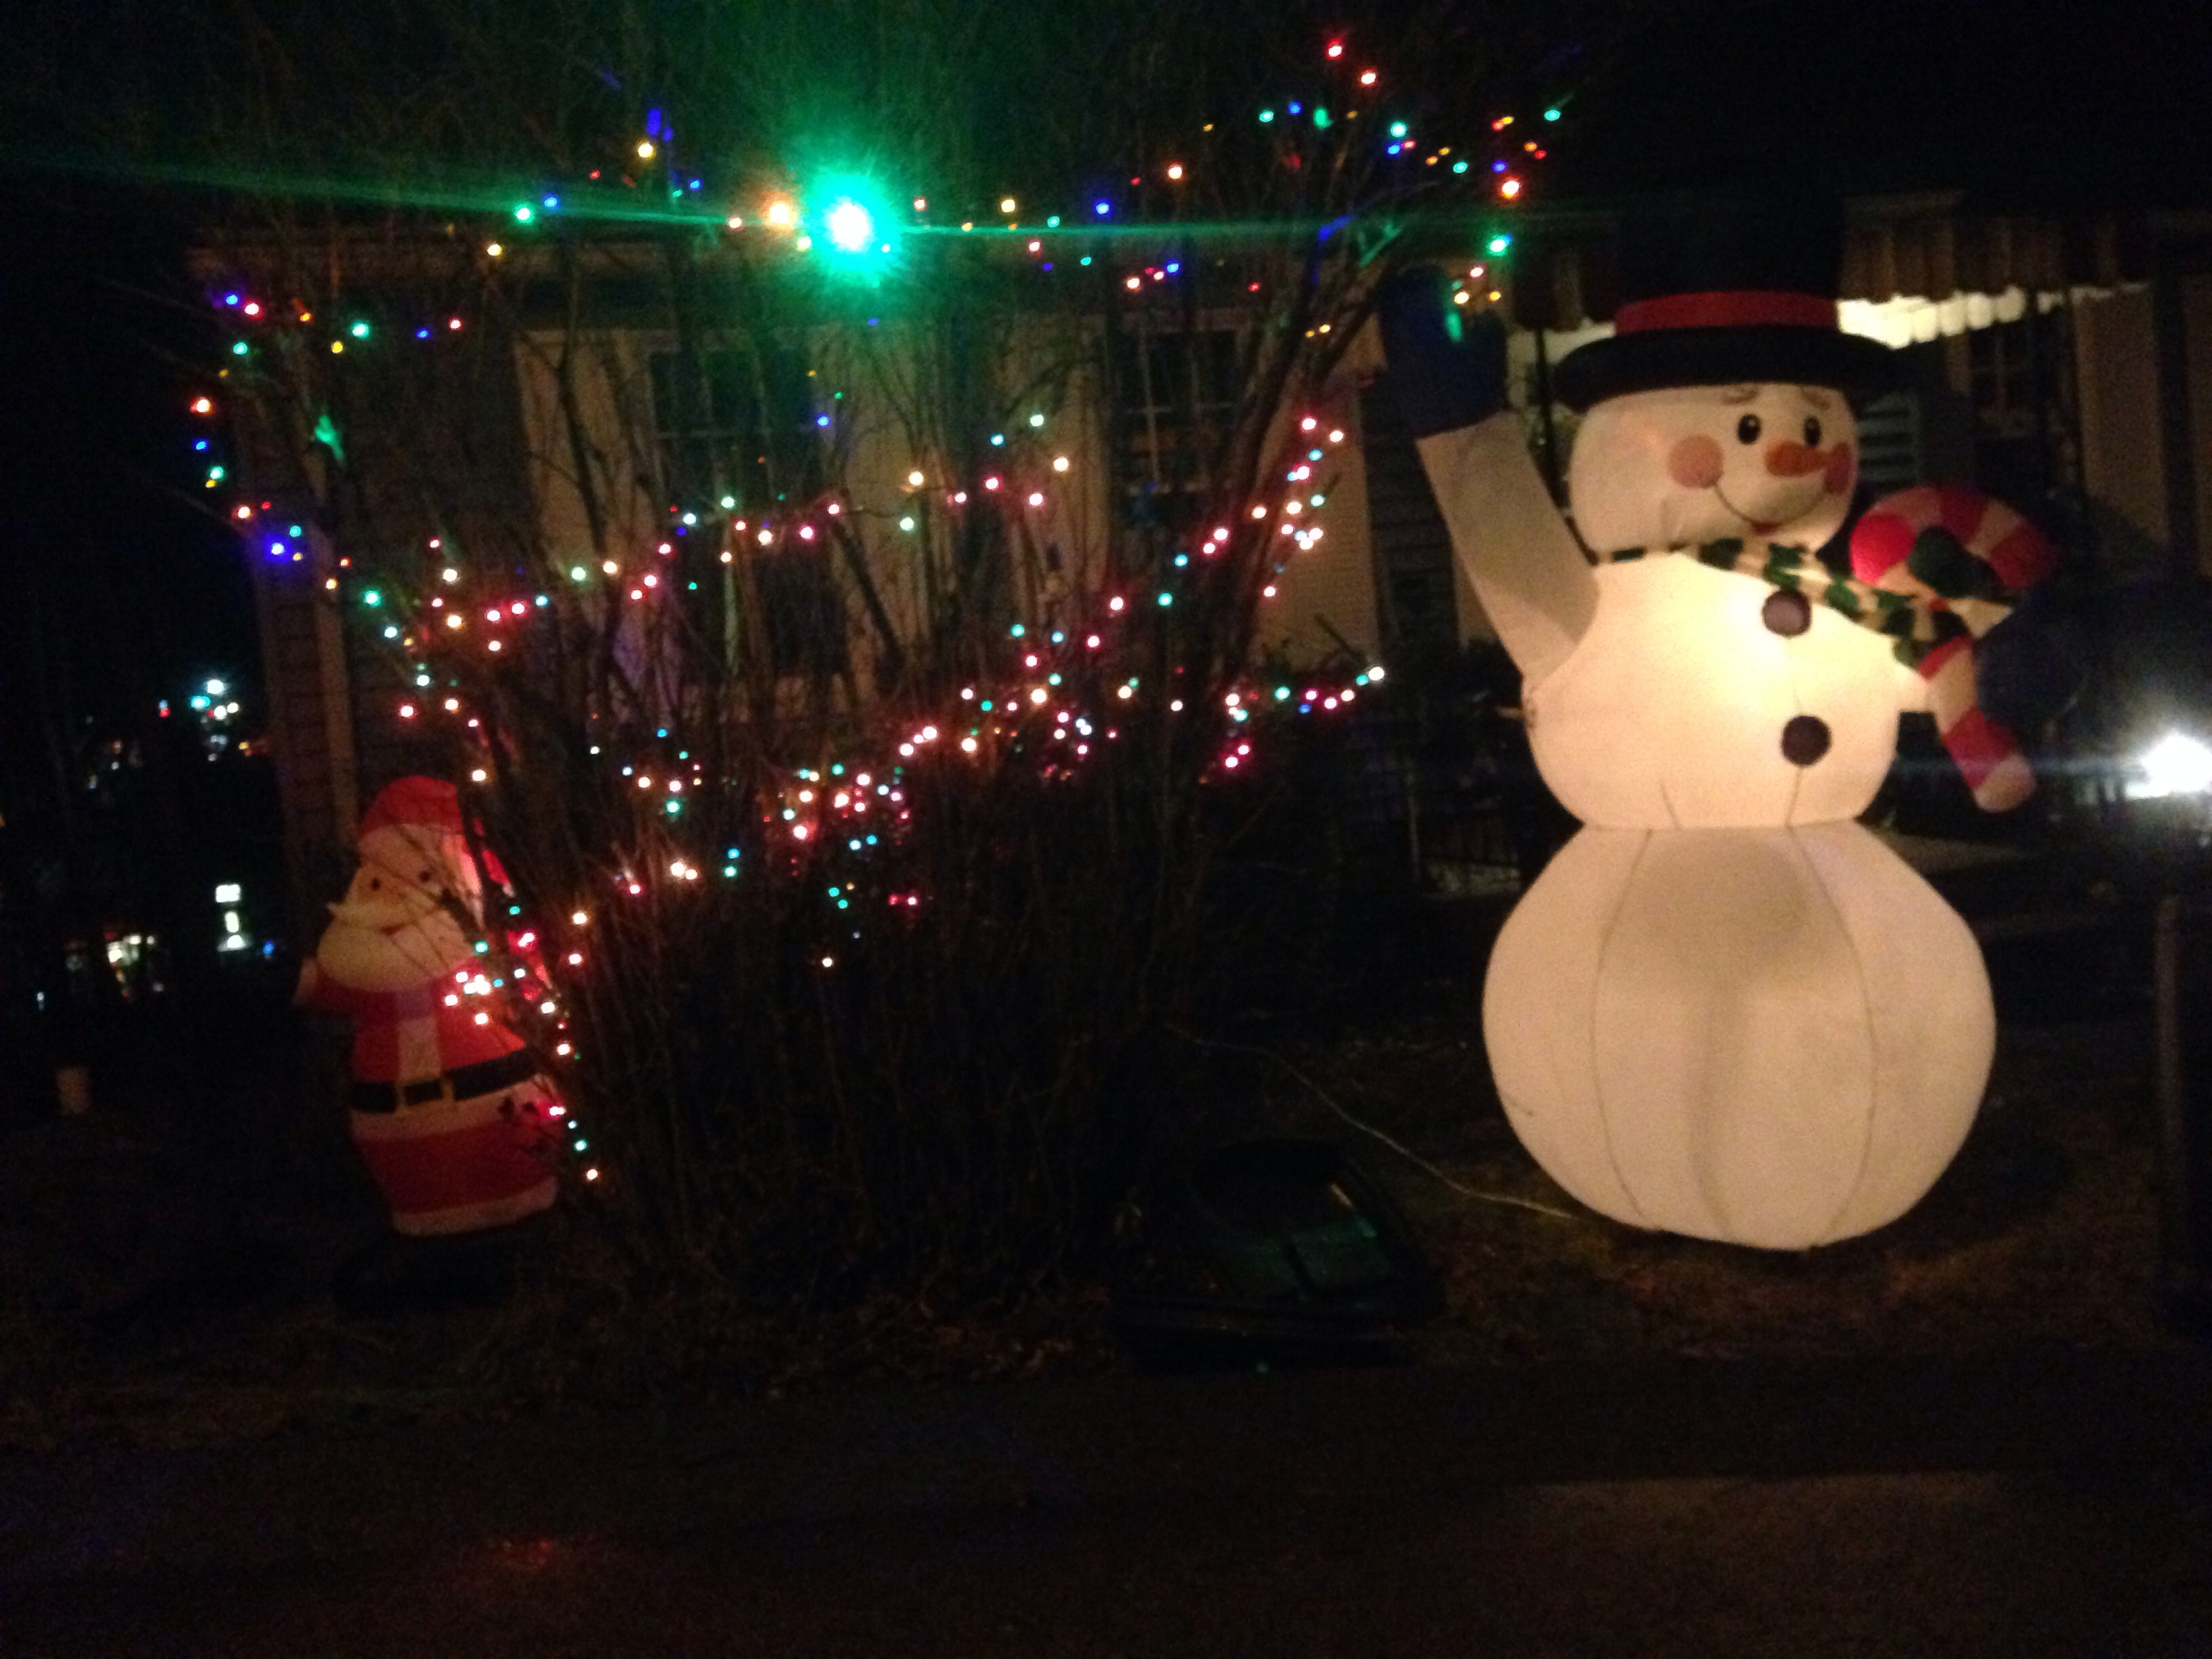 Outdoor Inflatable Yard Decor or Illuminated Plastic Blow